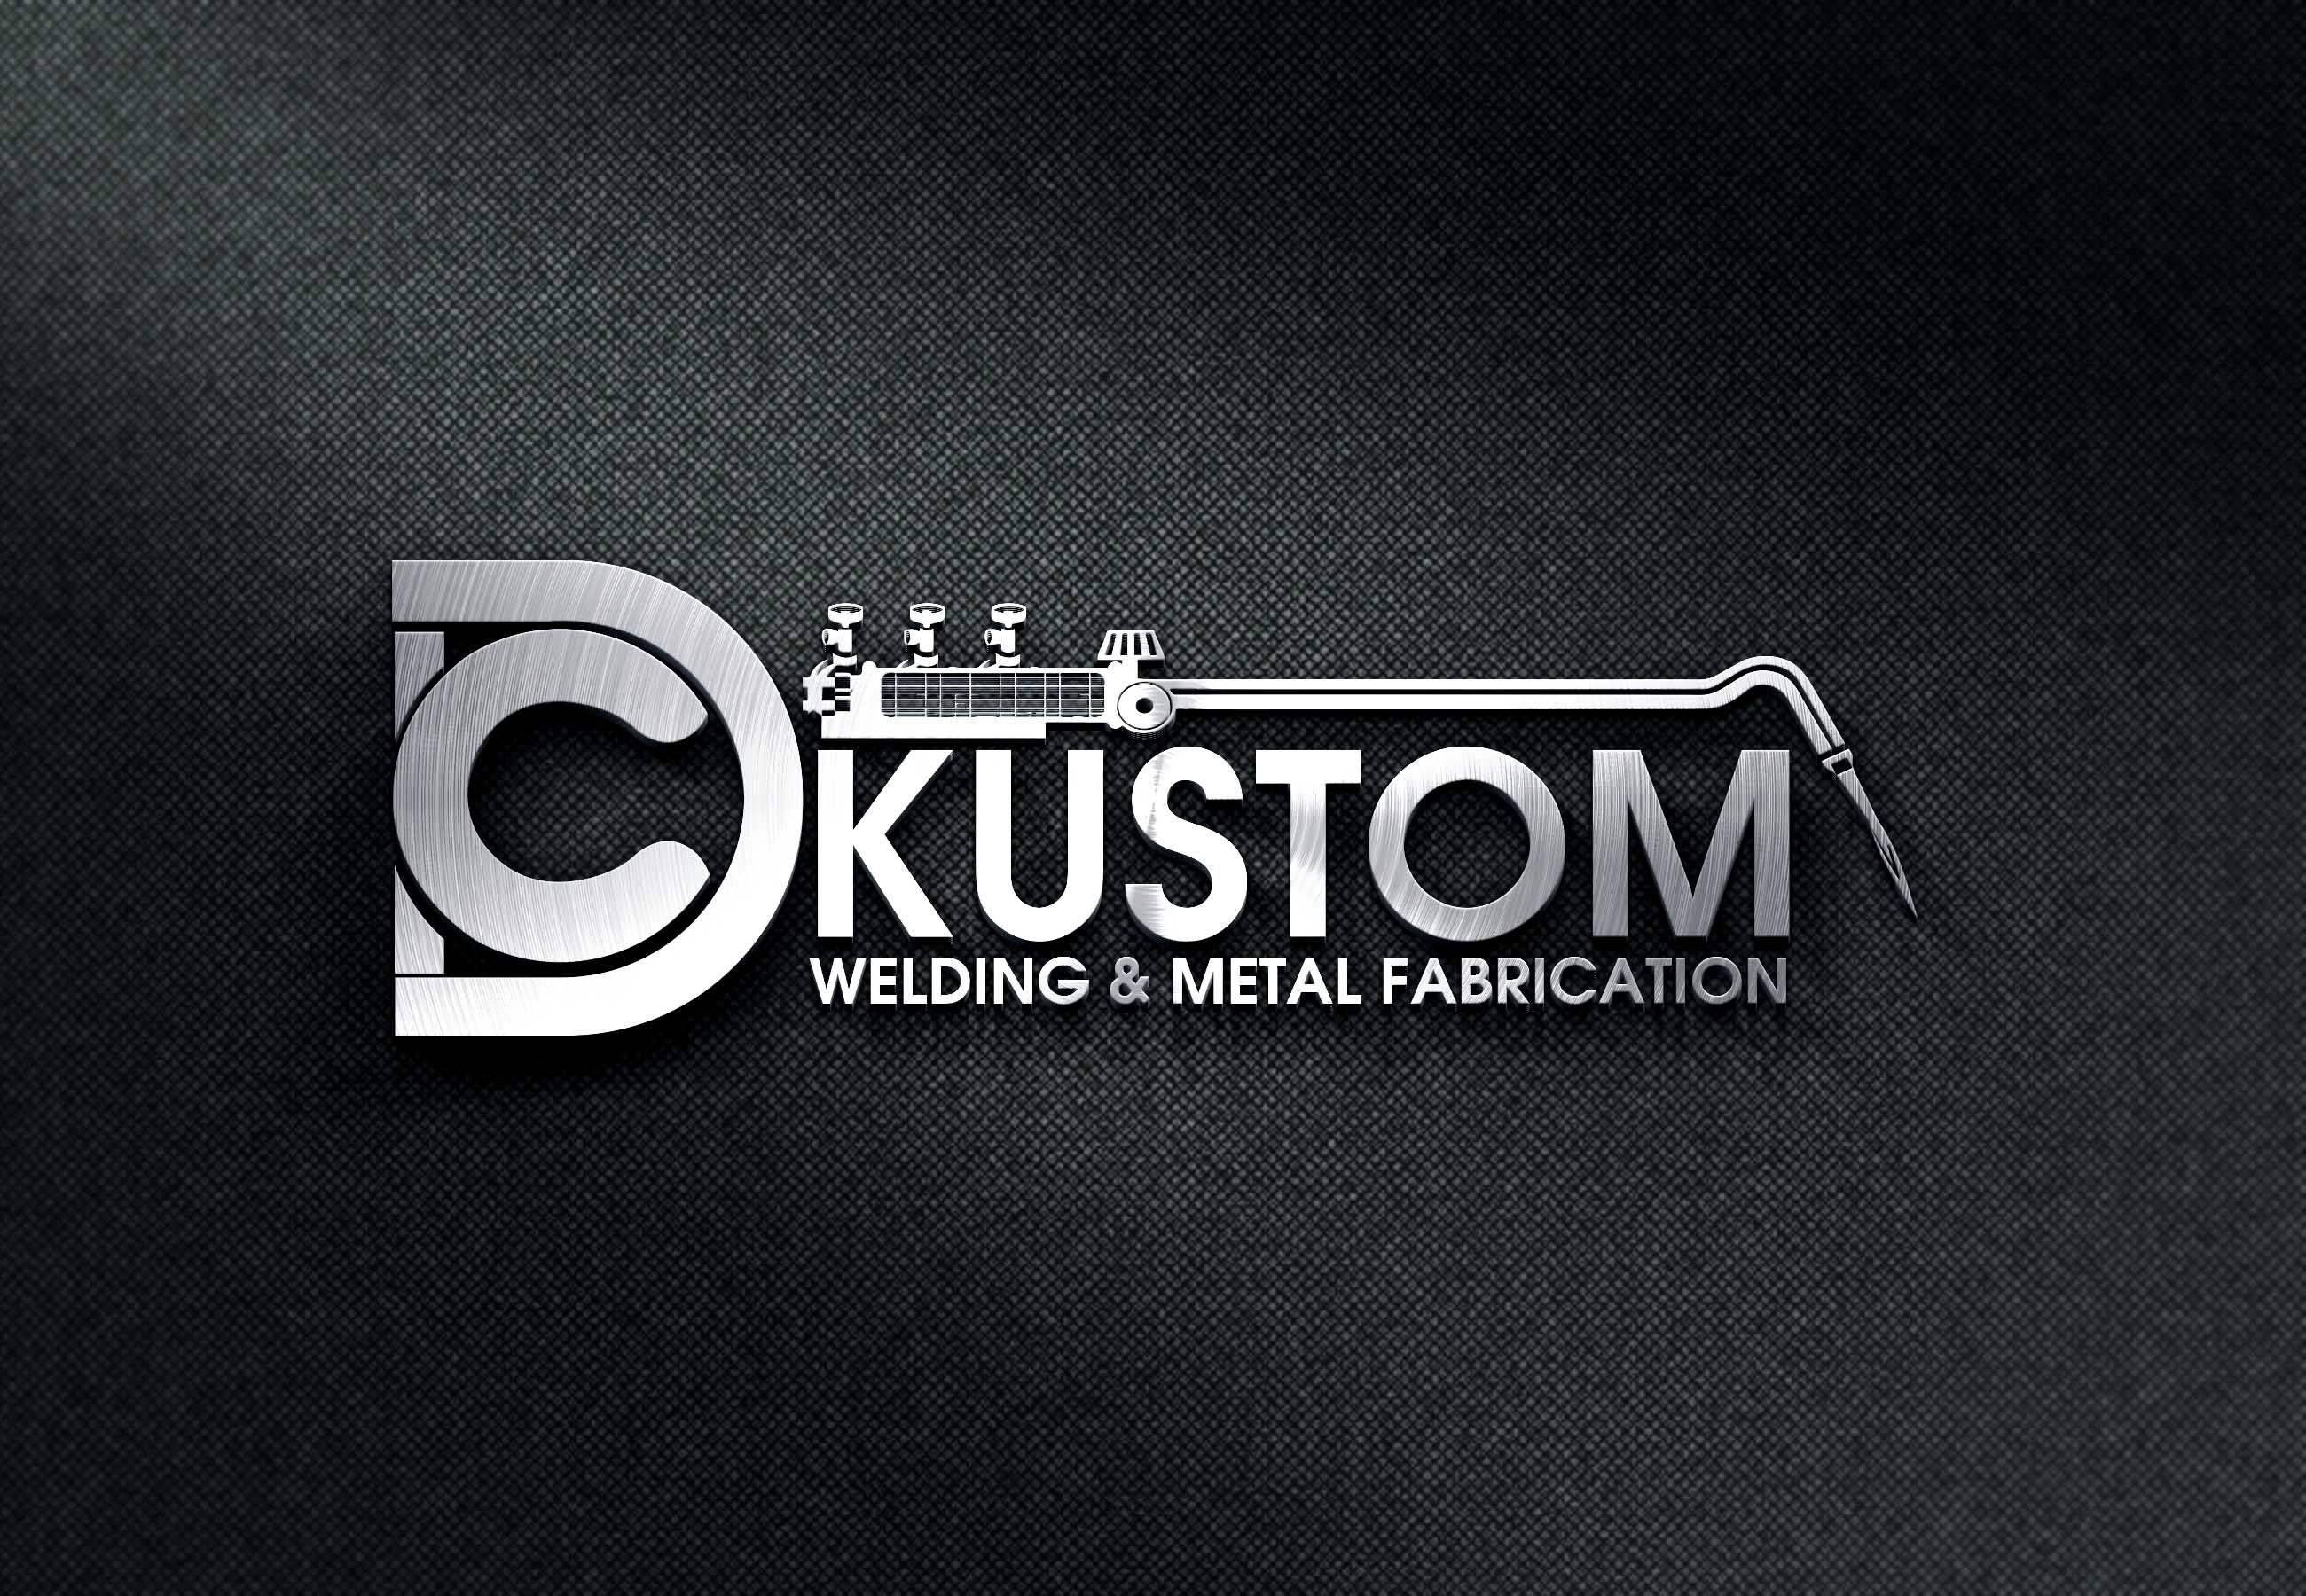 Logo Design by Private User - Entry No. 98 in the Logo Design Contest Imaginative Logo Design for DC KUSTOM WELDING & METAL FABRICATION.